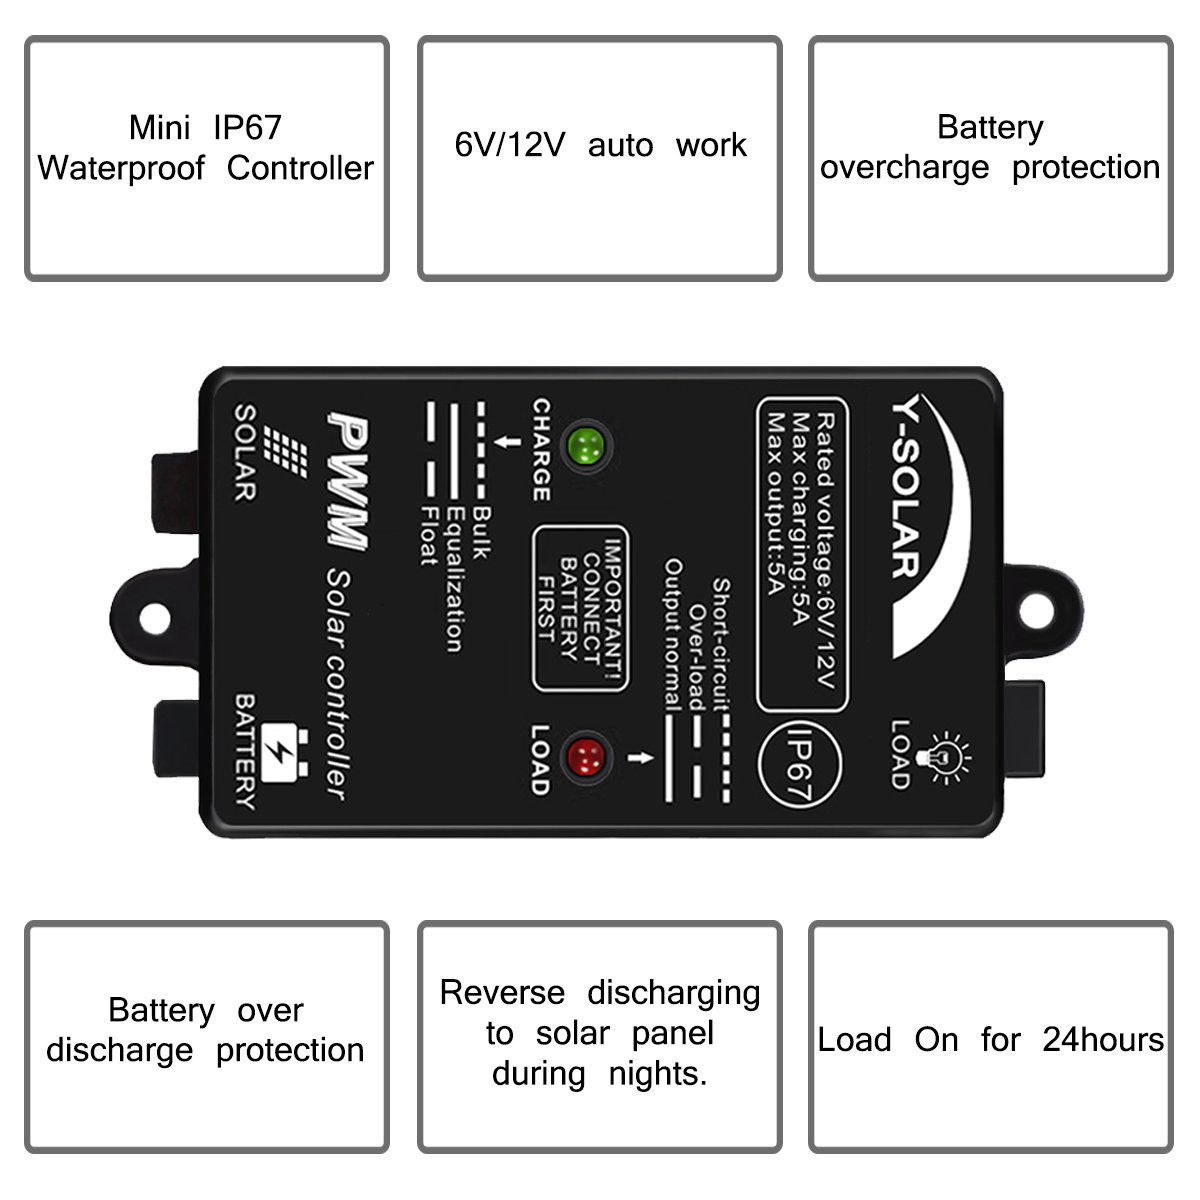 5a Solar Charge Controller Waterproof Y 6v Battery Ups Circuit Diagram Automatic Panel 12v Load On 24h Ip67 For Lithium Polymer Charging